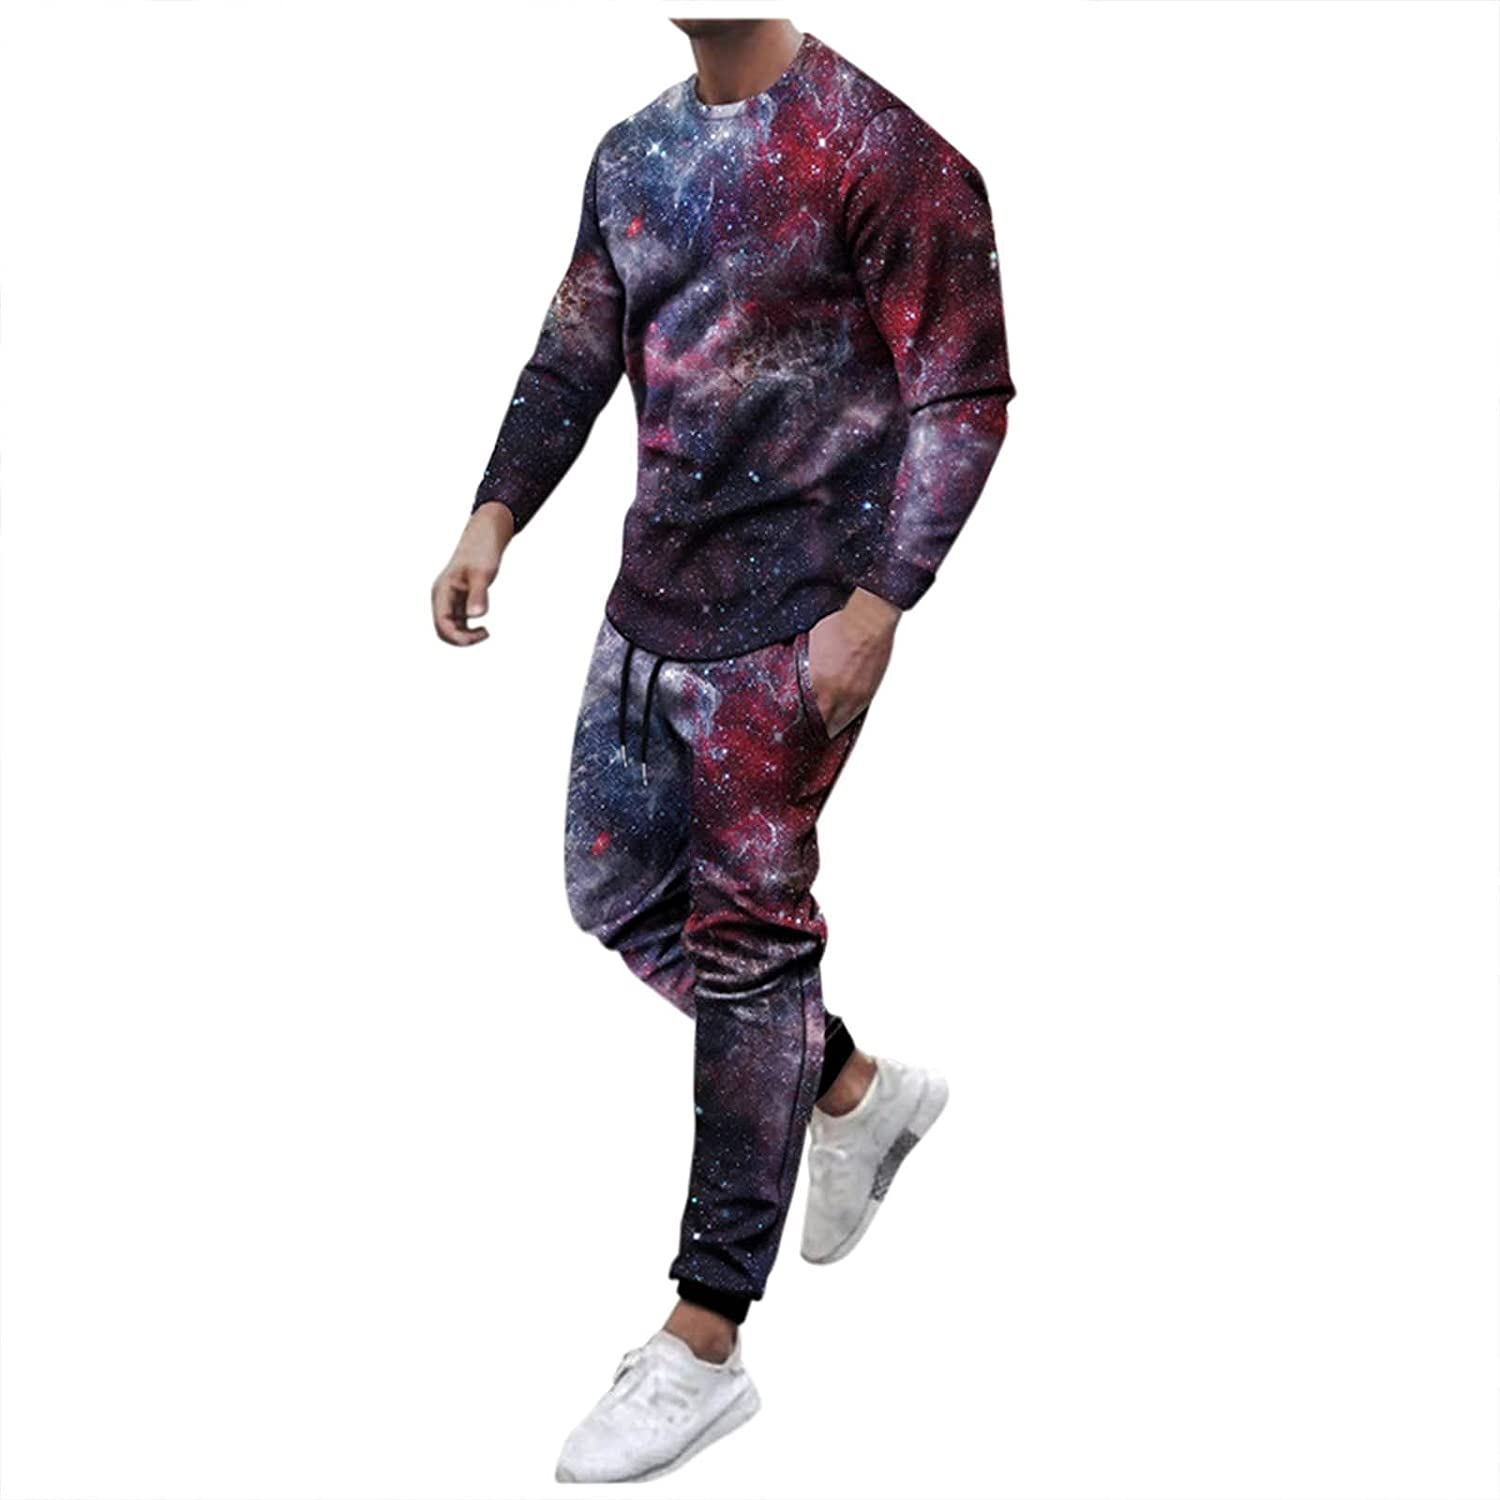 WOCACHI 2 Pieces Outfits Set for Mens, Street Printed Long Sleeve Tracksuits Sports Crewneck Tee Tops Pants Set